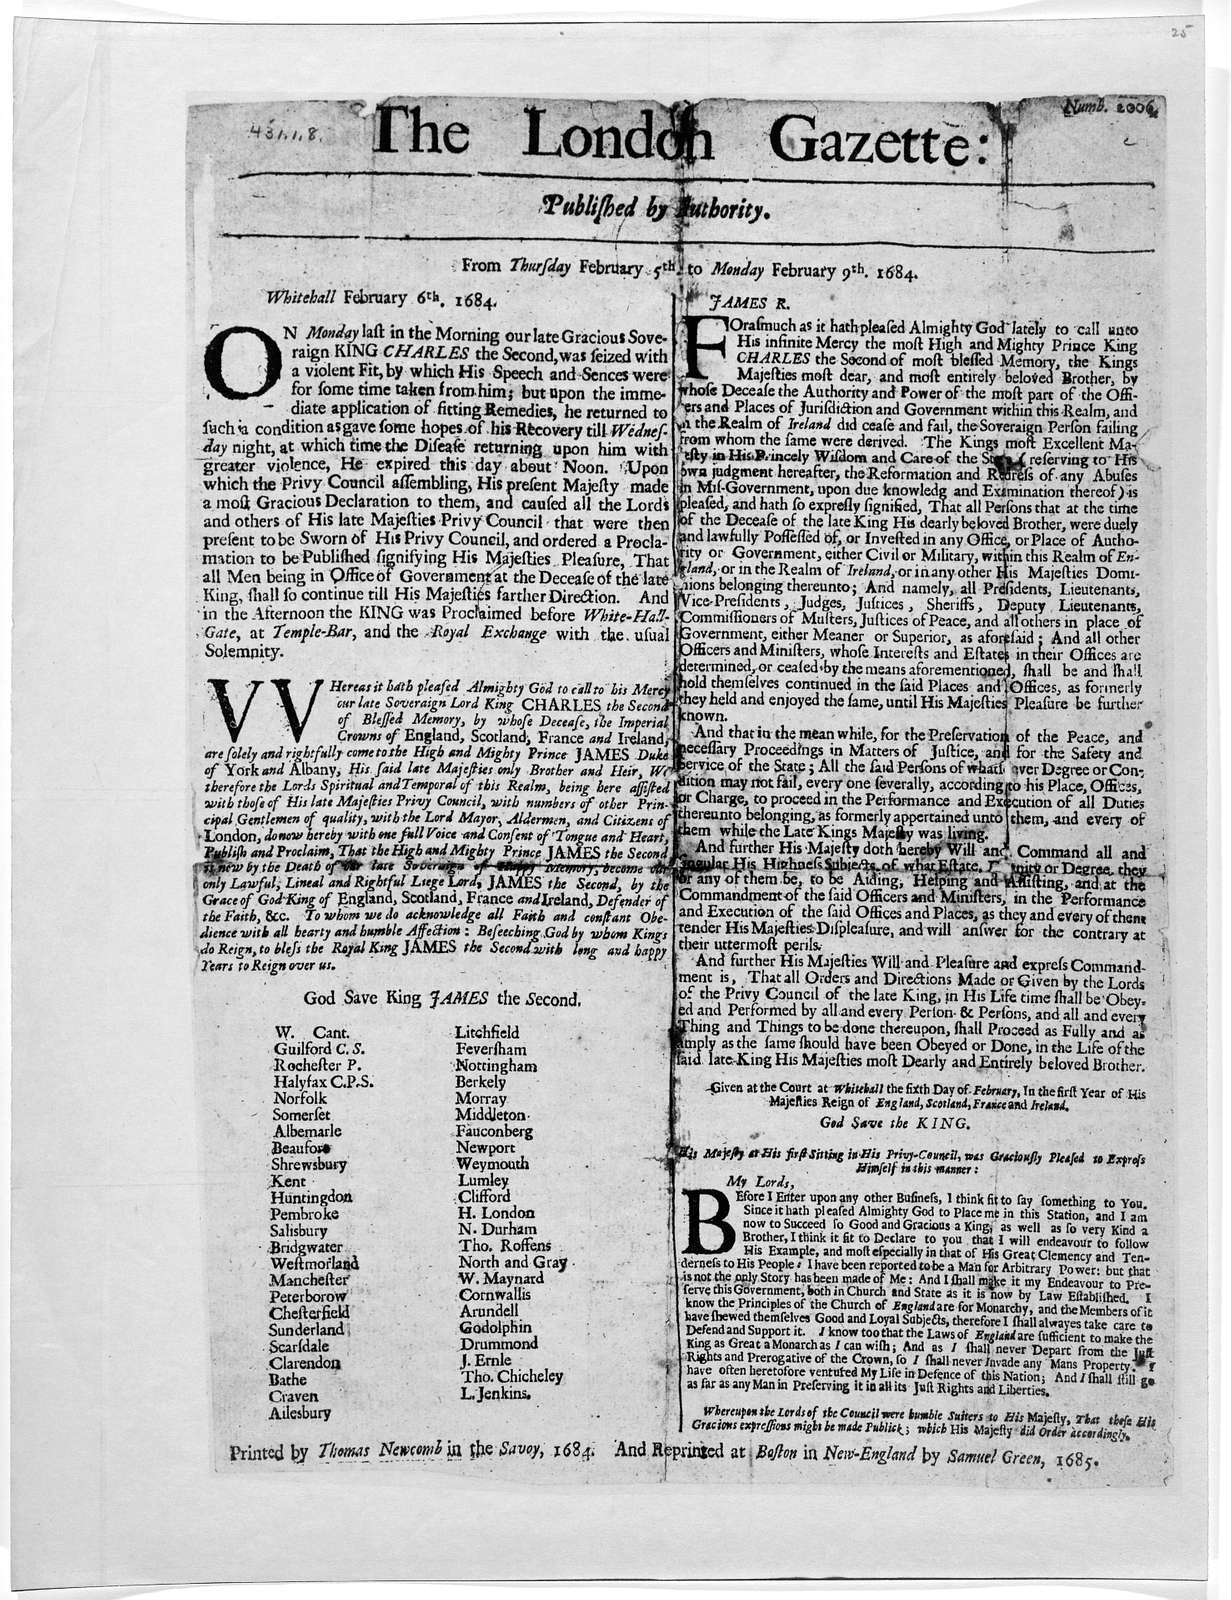 The London Gazette: Published by authority. From Thursday February 5th to Monday February 9th 1684 … Printed by Thomas Newcomb in the Savoy 1684. And Reprinted at Boston in New-England by Samuel Green, 1685.